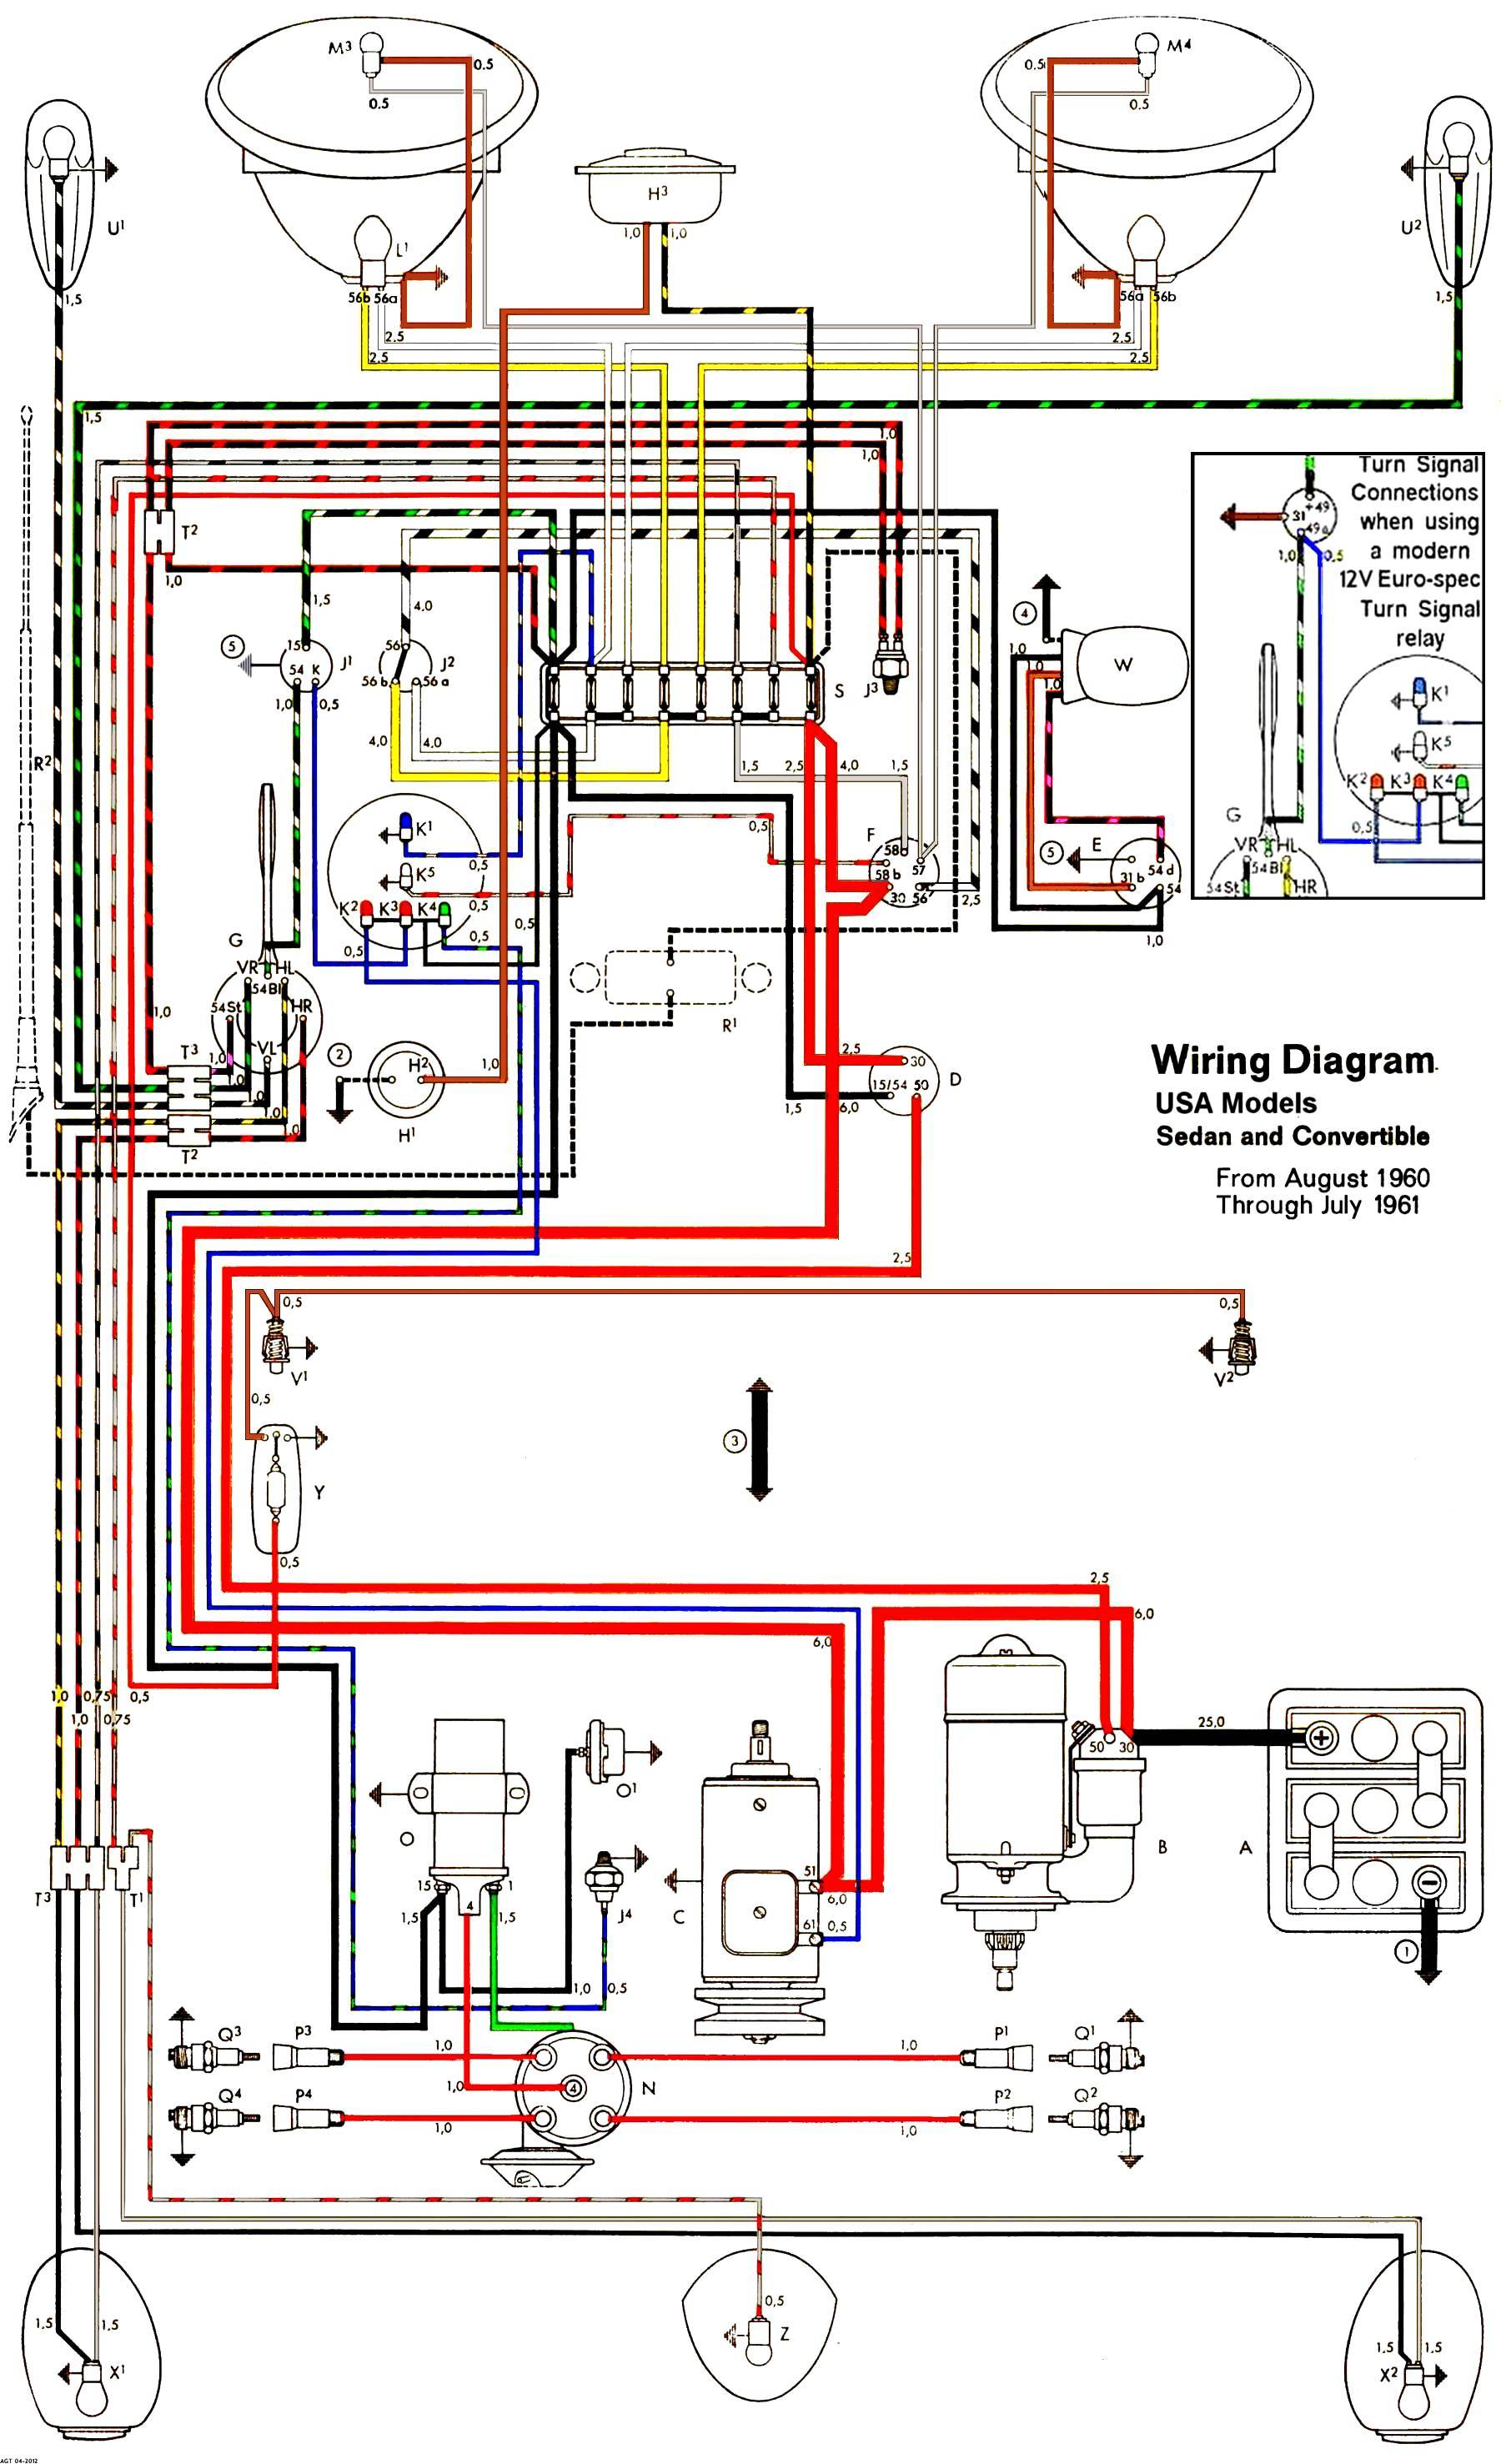 1961USA T1 thesamba com type 1 wiring diagrams